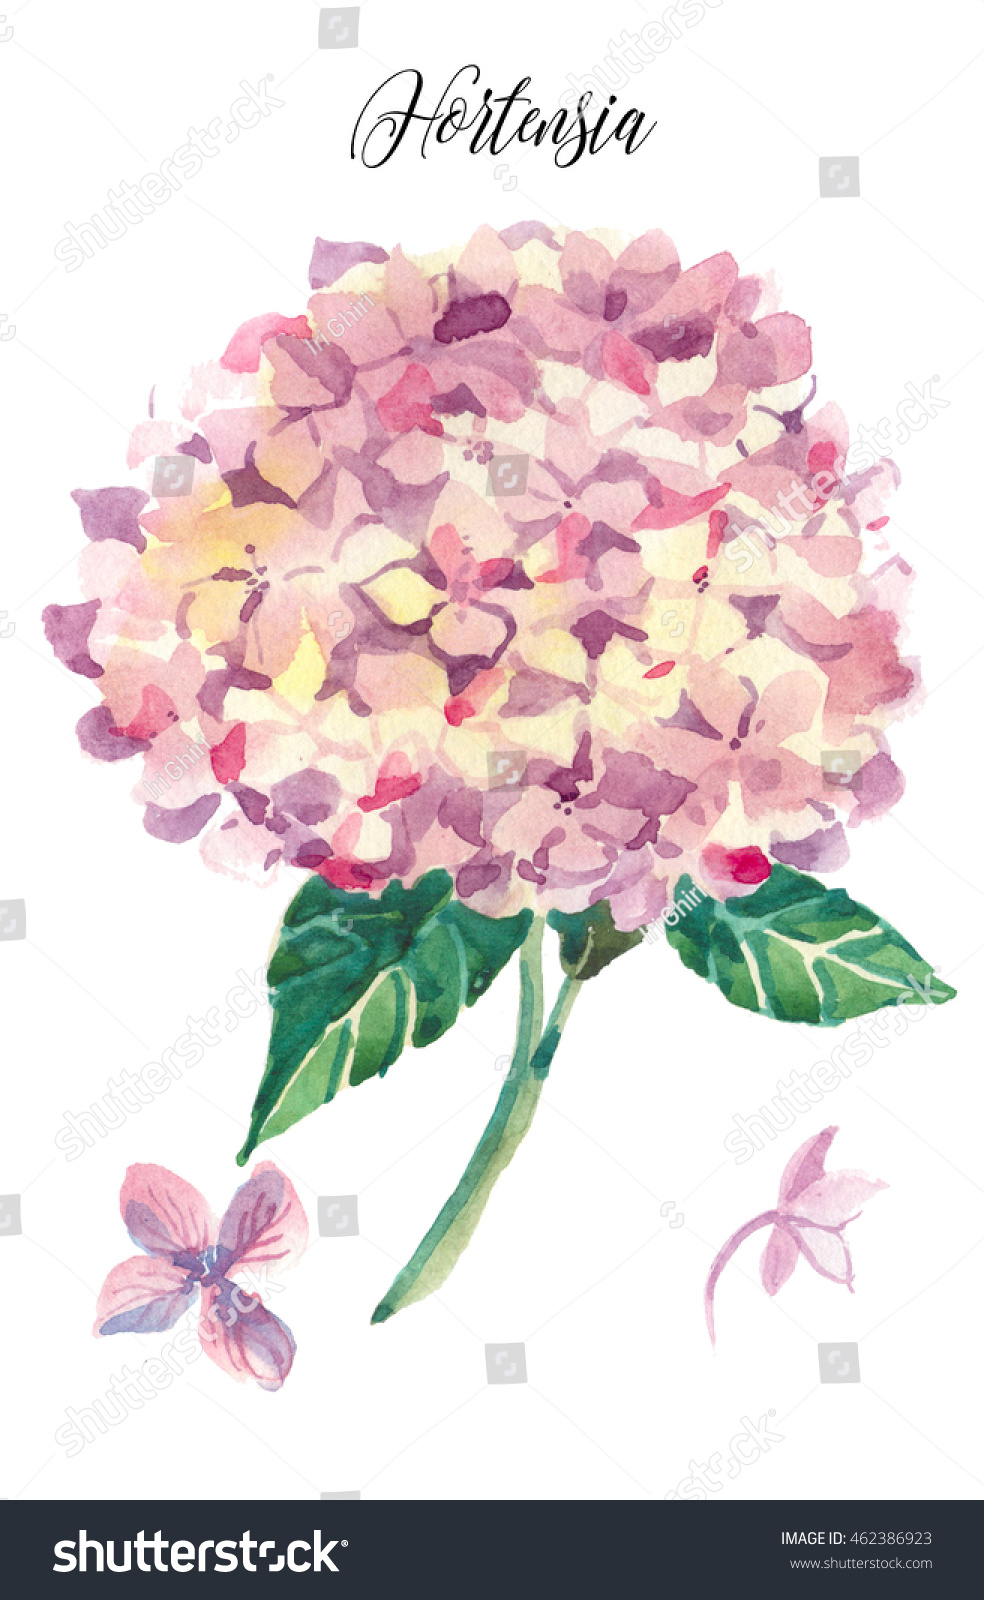 Pink Hydrangea Common Name Hortensia Flower Stock Illustration